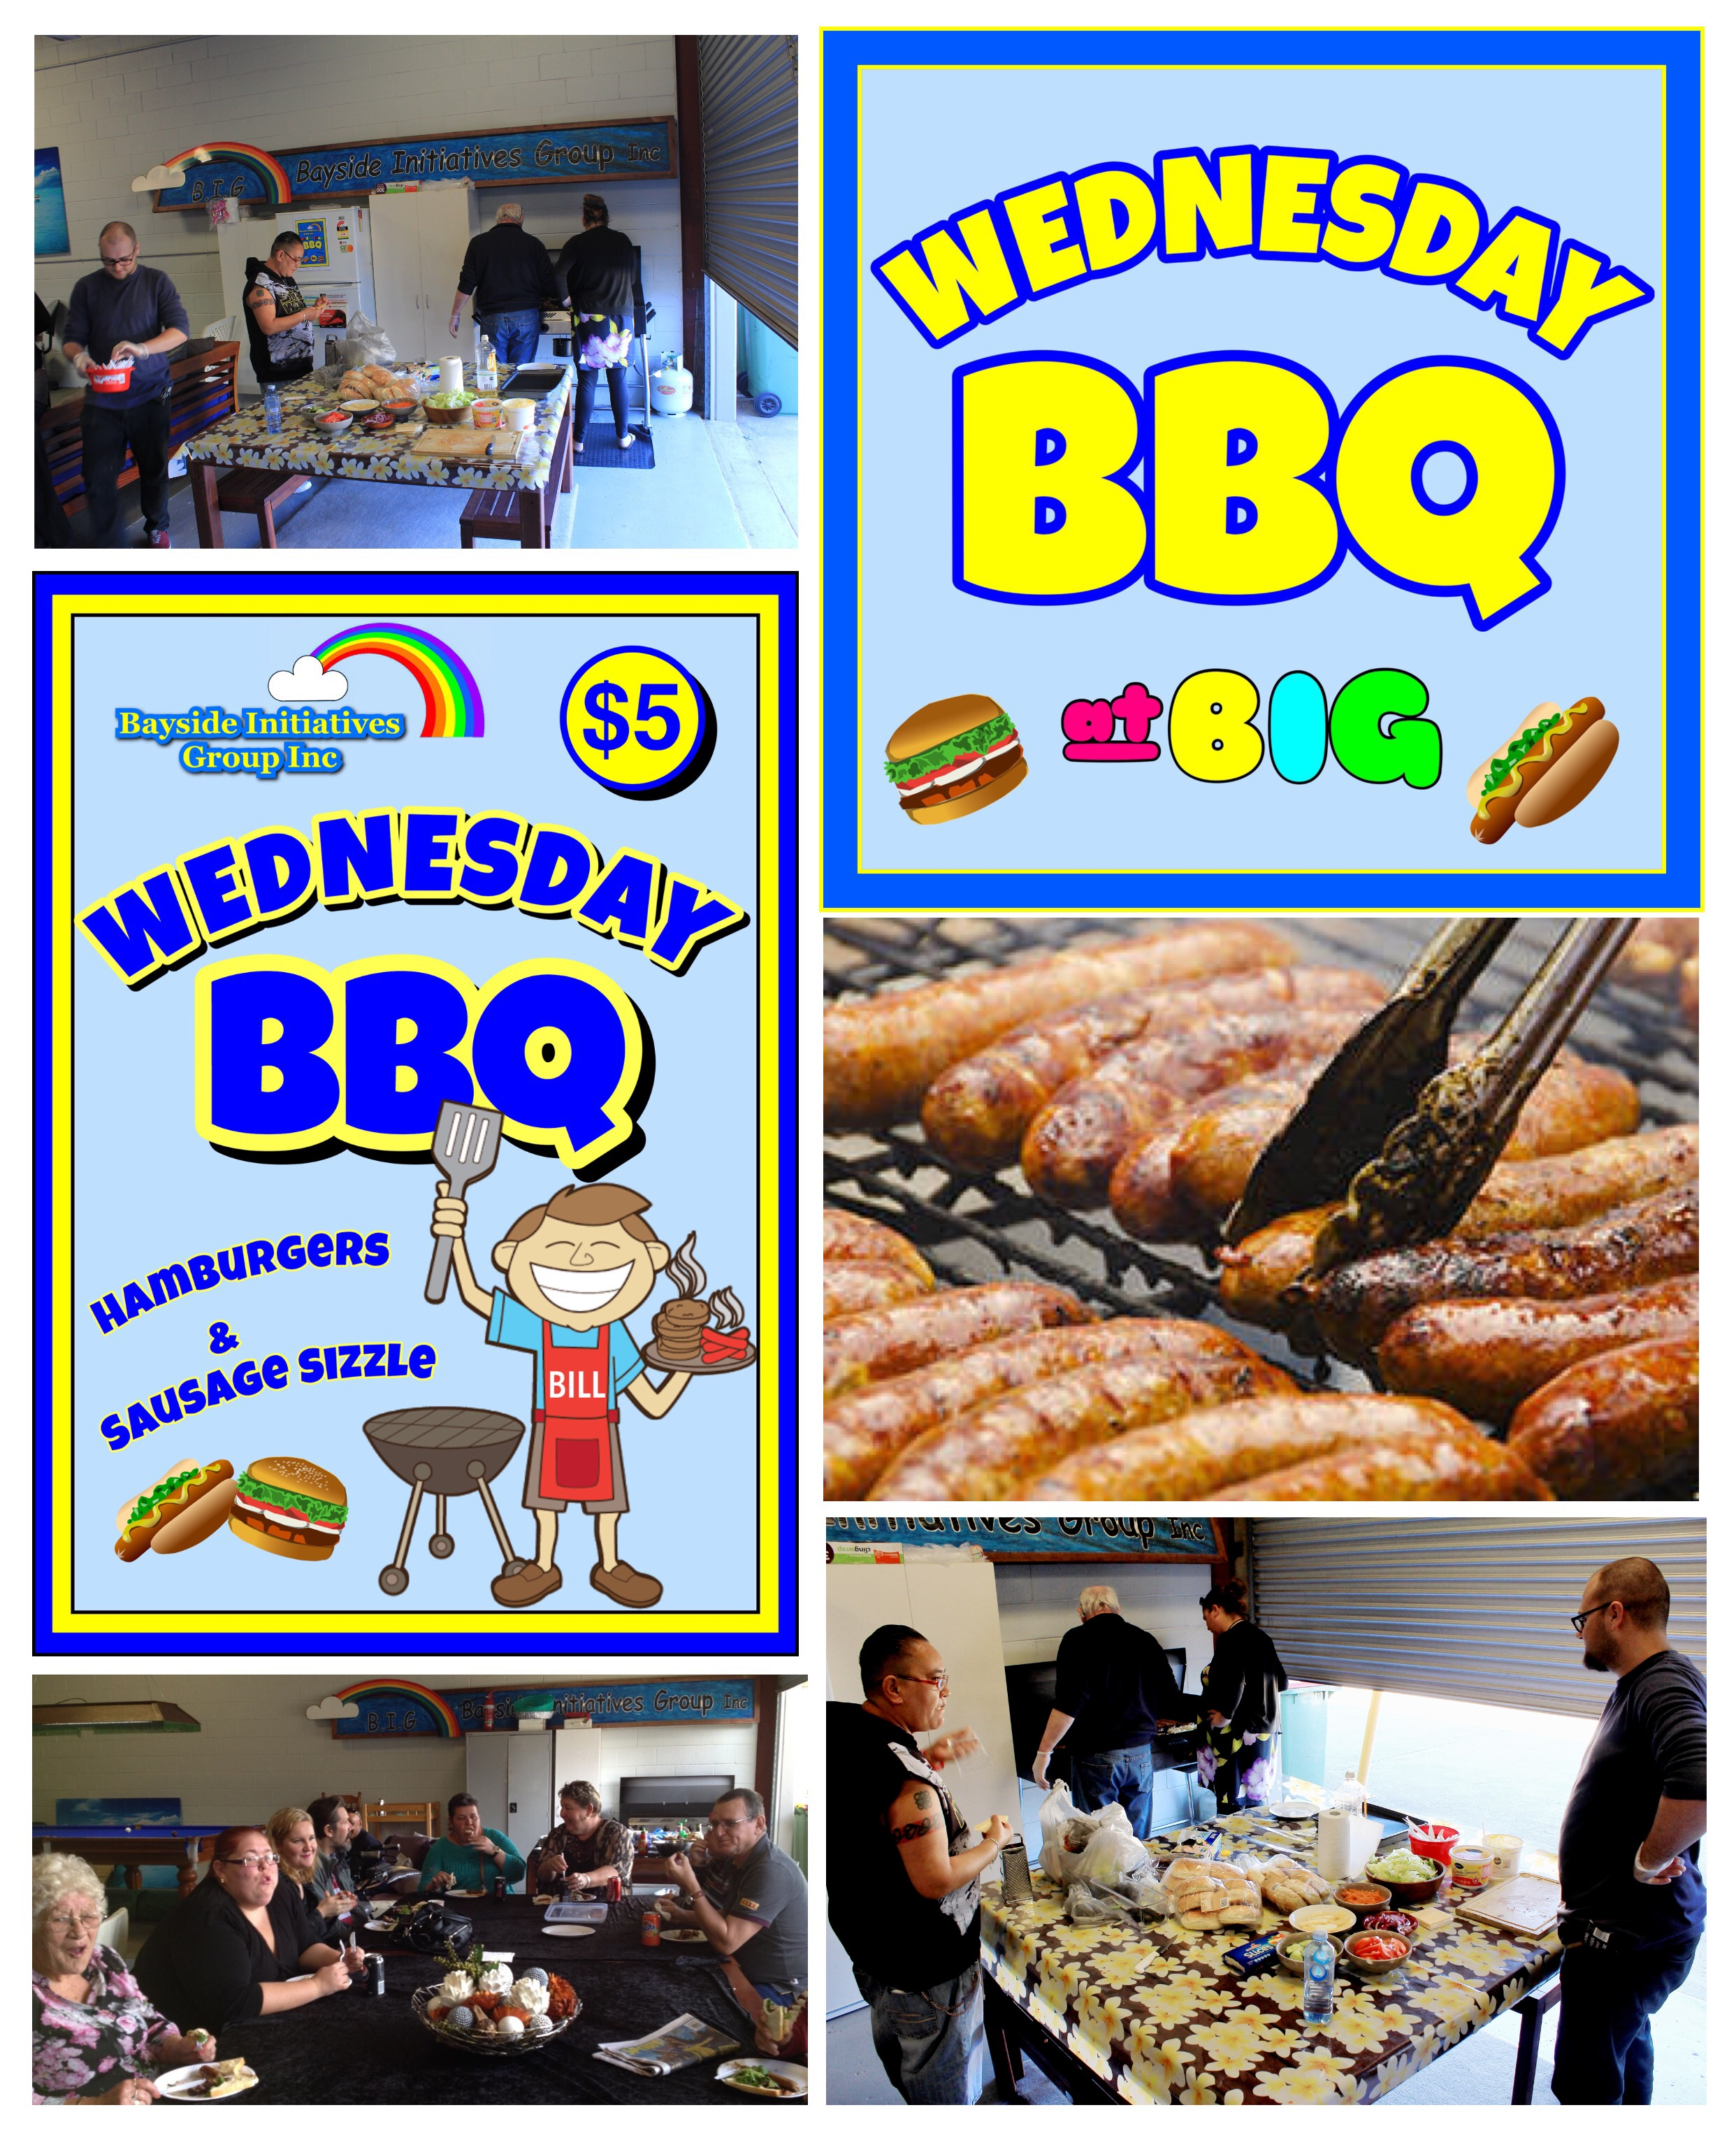 Wednesday BBQ @ BIG - Good food, great friends, fun times - Peer support for mental health consumers in the Redlands and Bayside areas.